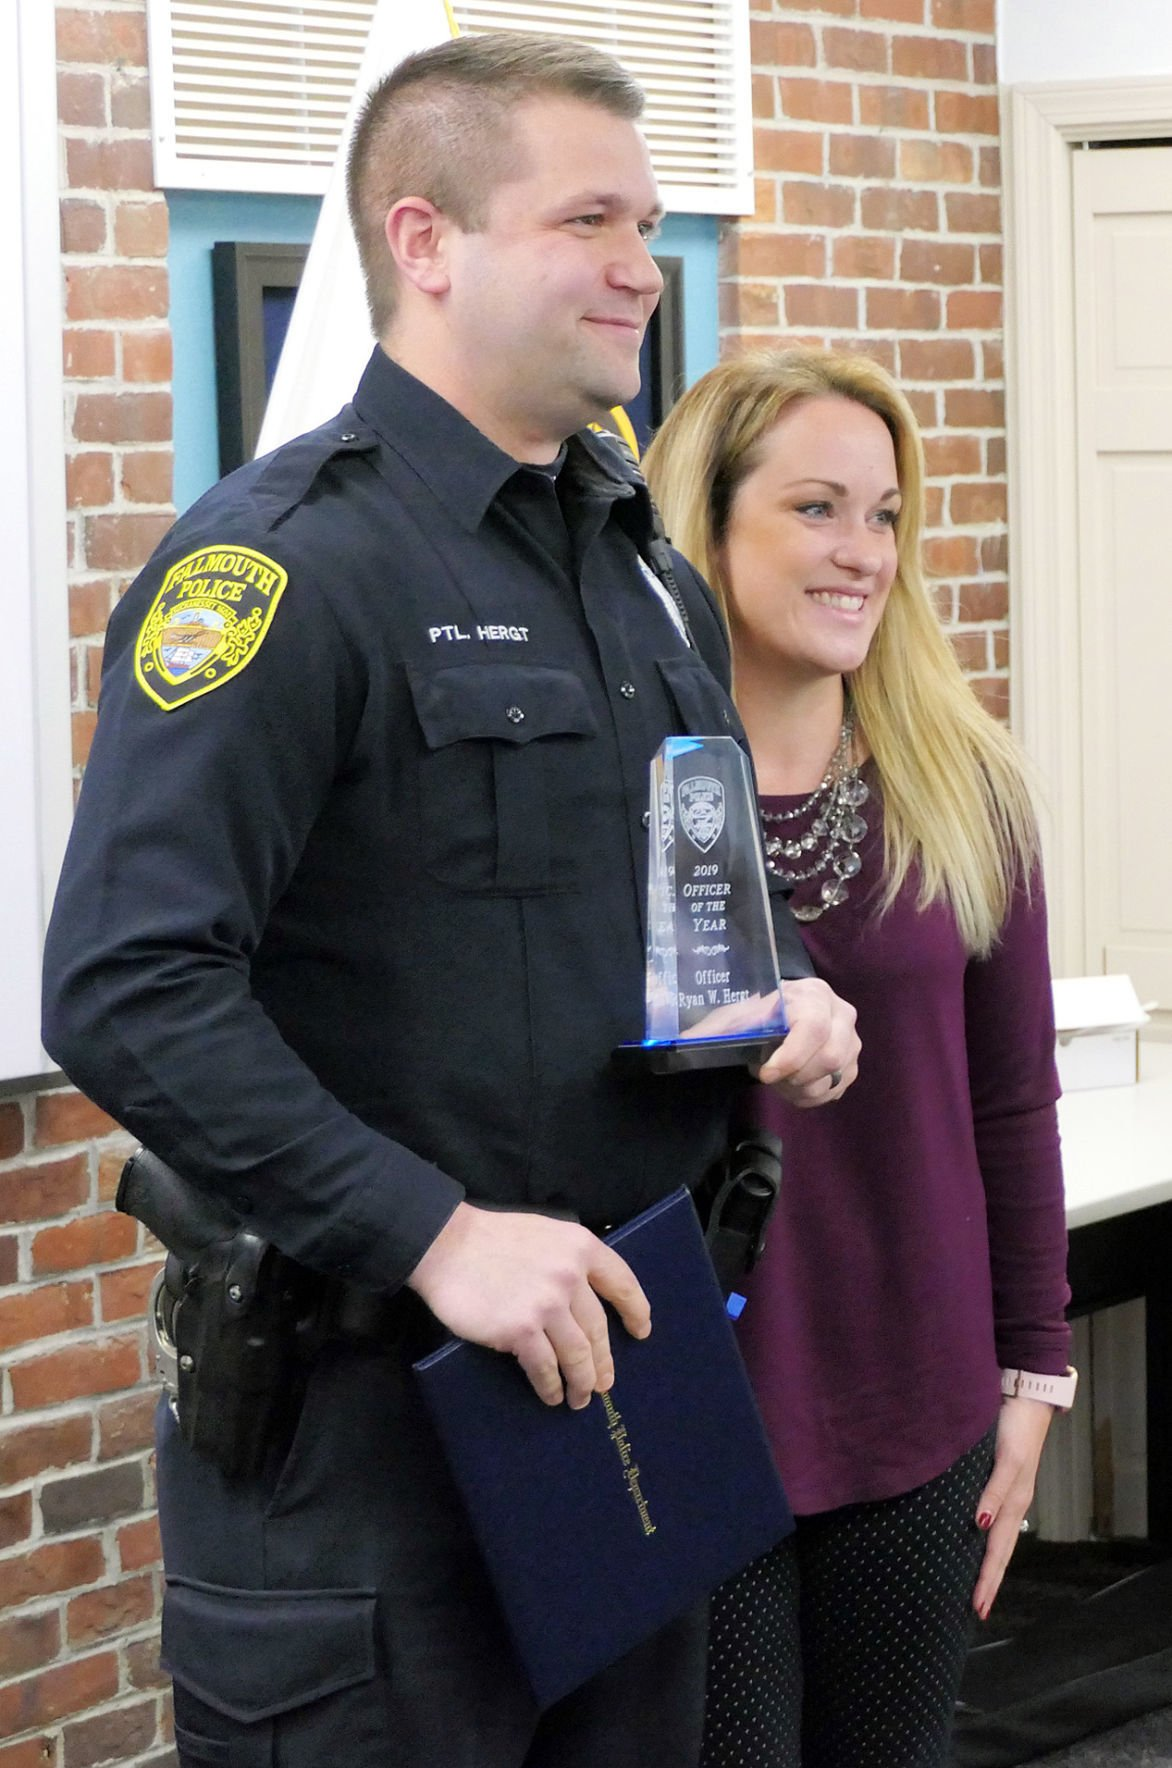 Falmouth Police Department Awards - February 26, 2020